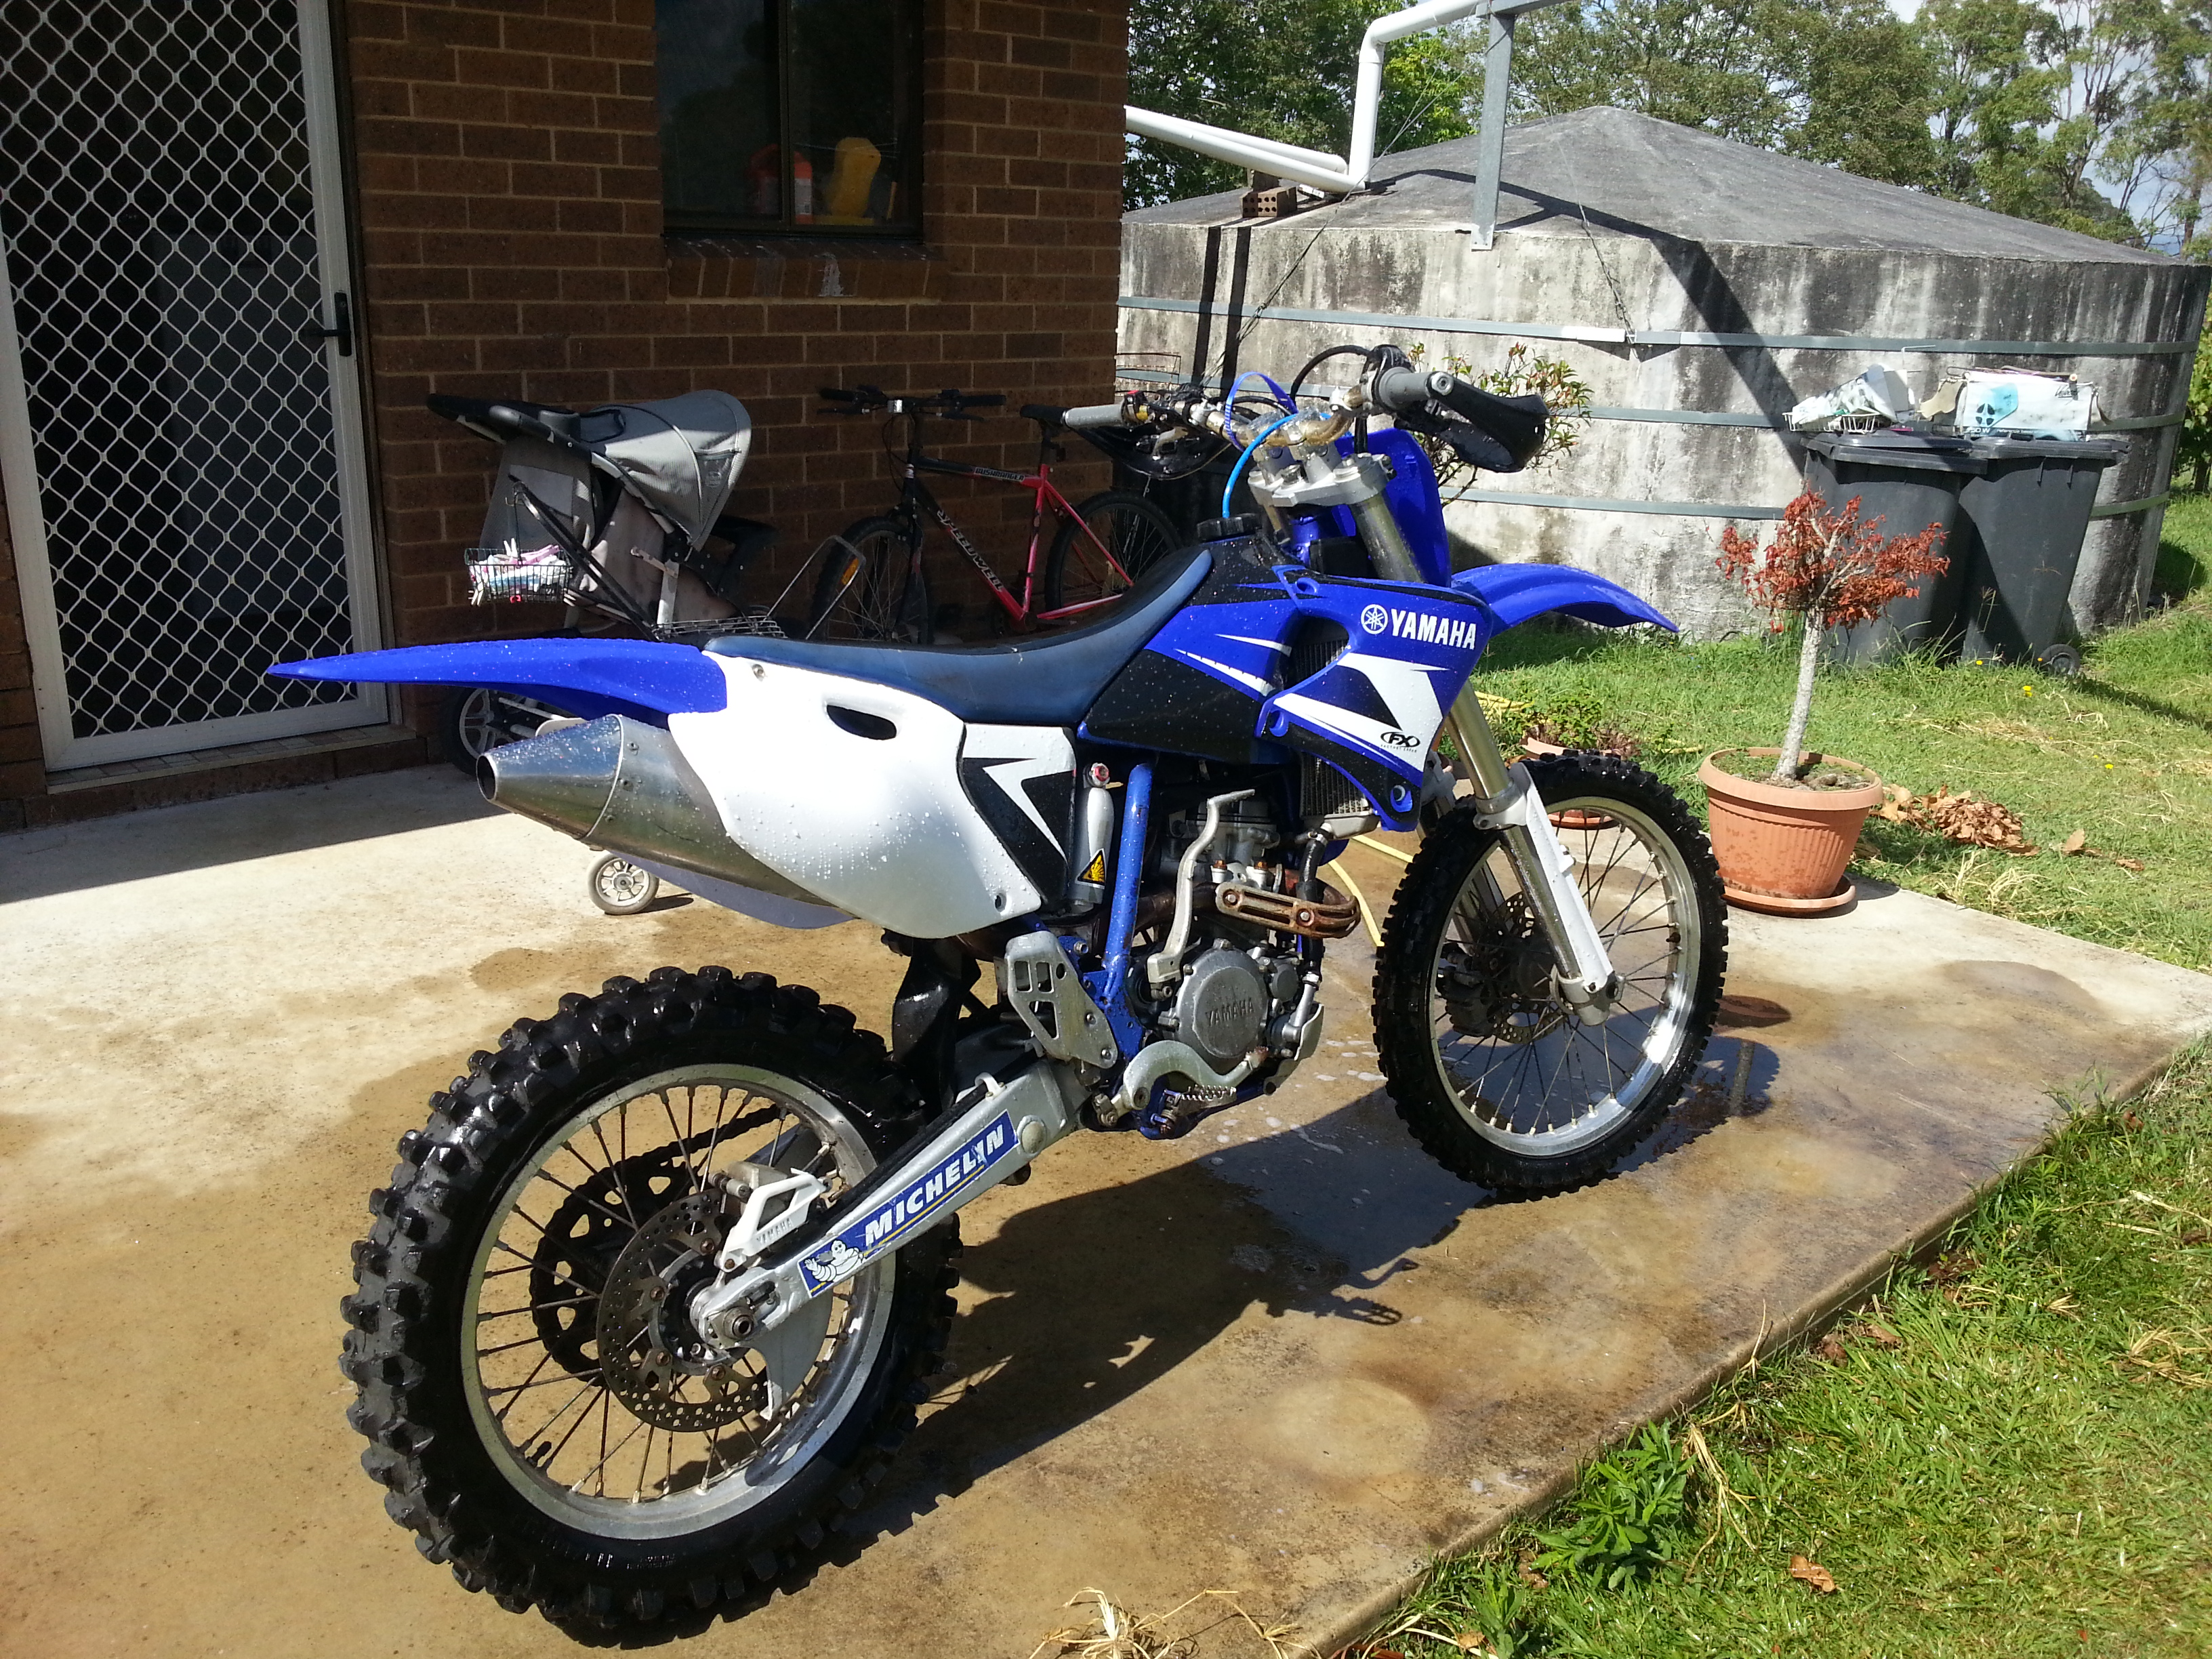 2002 yamaha wr250f for sale or swap nsw regional On 2002 yamaha wr250f for sale